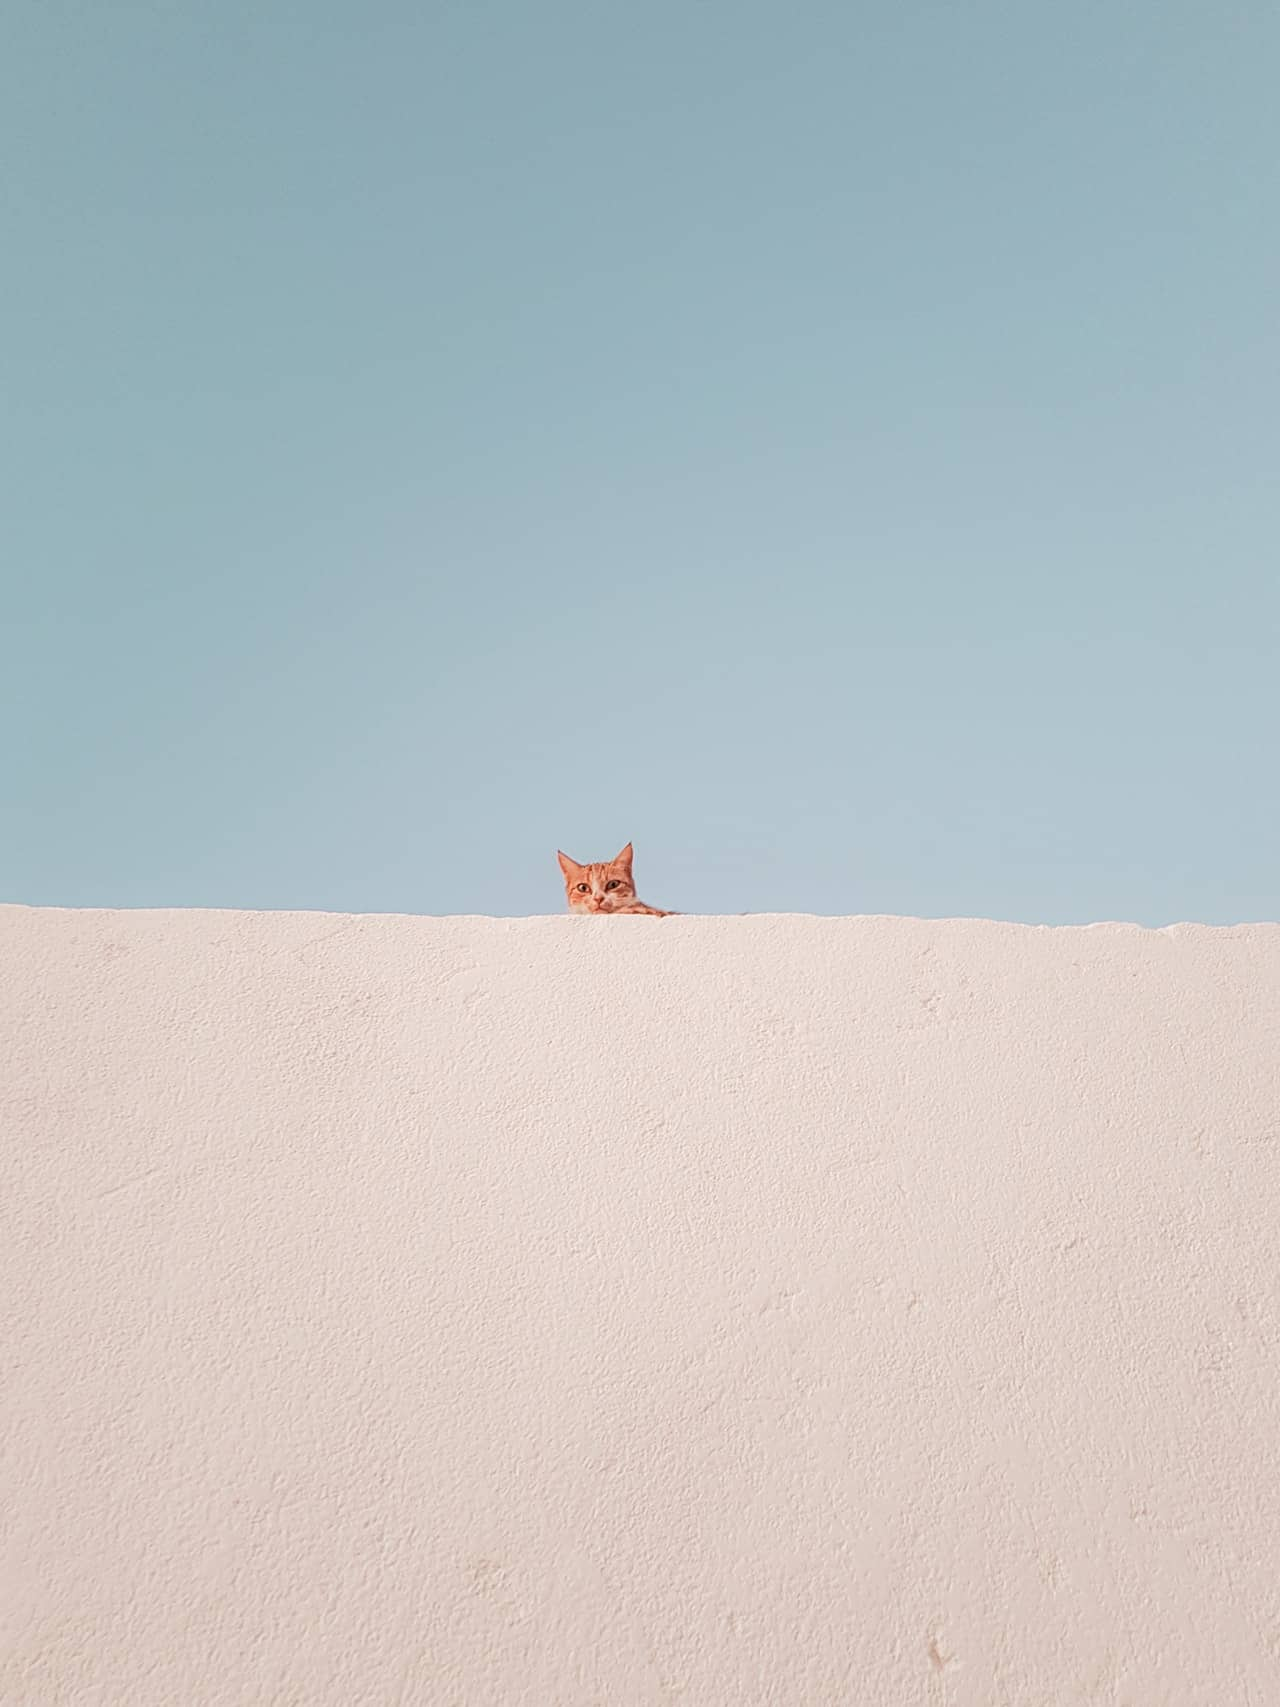 Do Cats Like Sand? - Travel With Your Cat